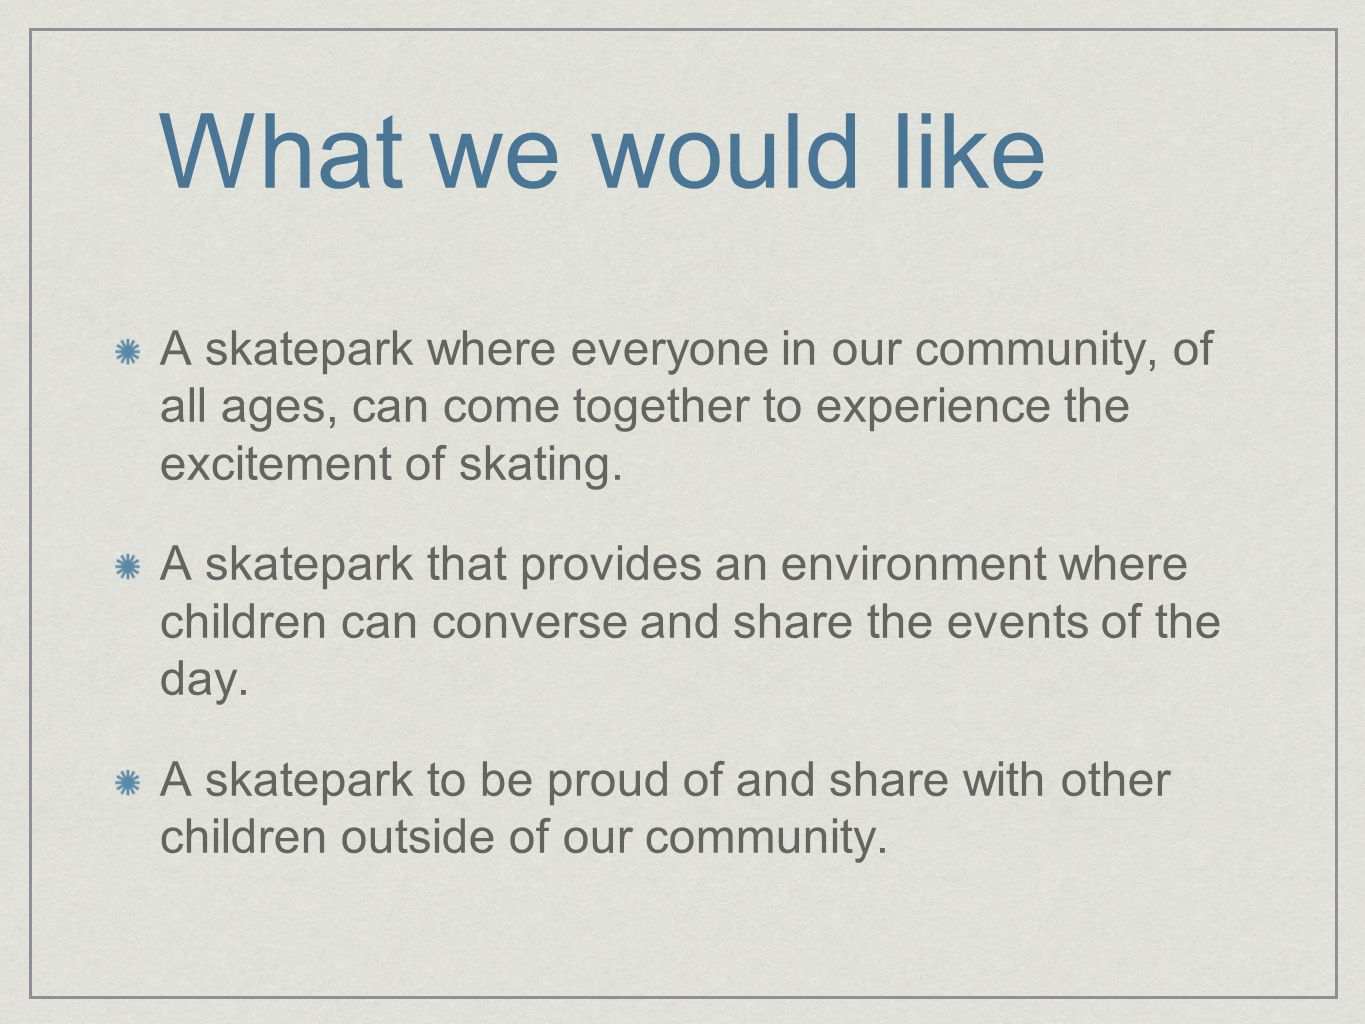 What we would like A skatepark where everyone in our community, of all ages, can come together to experience the excitement of skating.